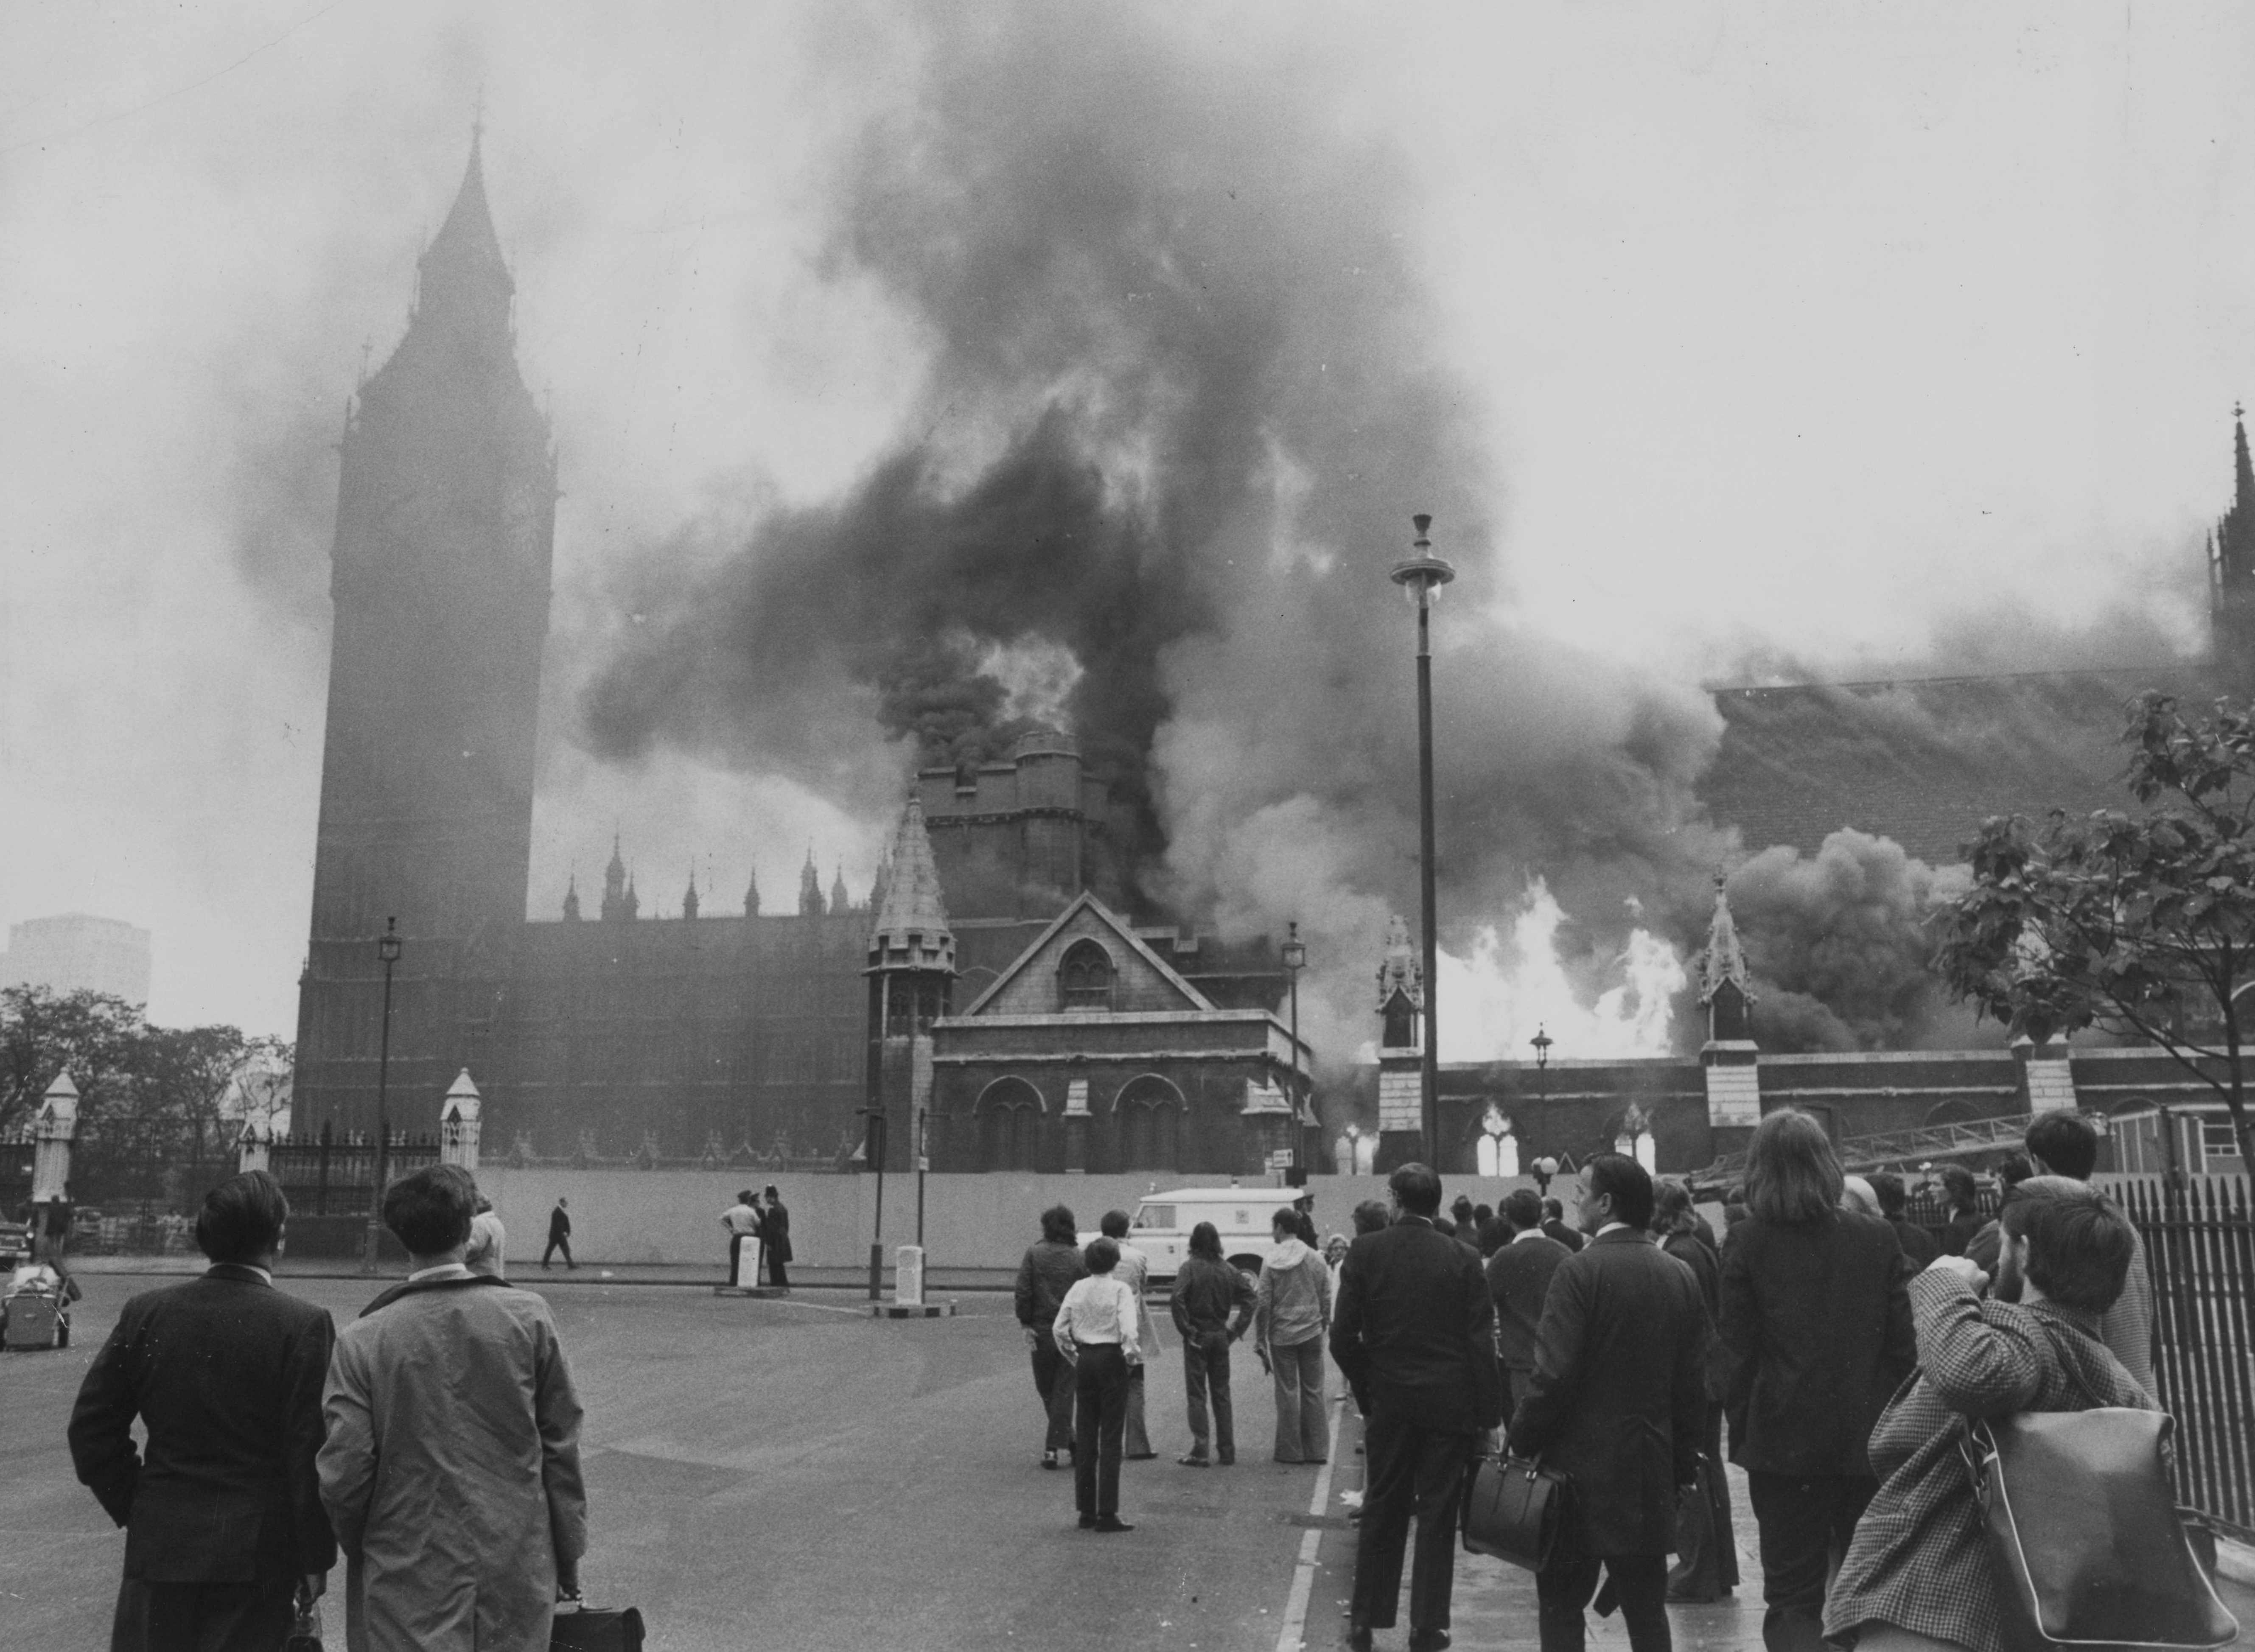 Flames leap from Westminster Hall at the House of Commons in London after an IRA bomb exploded. © Getty Images